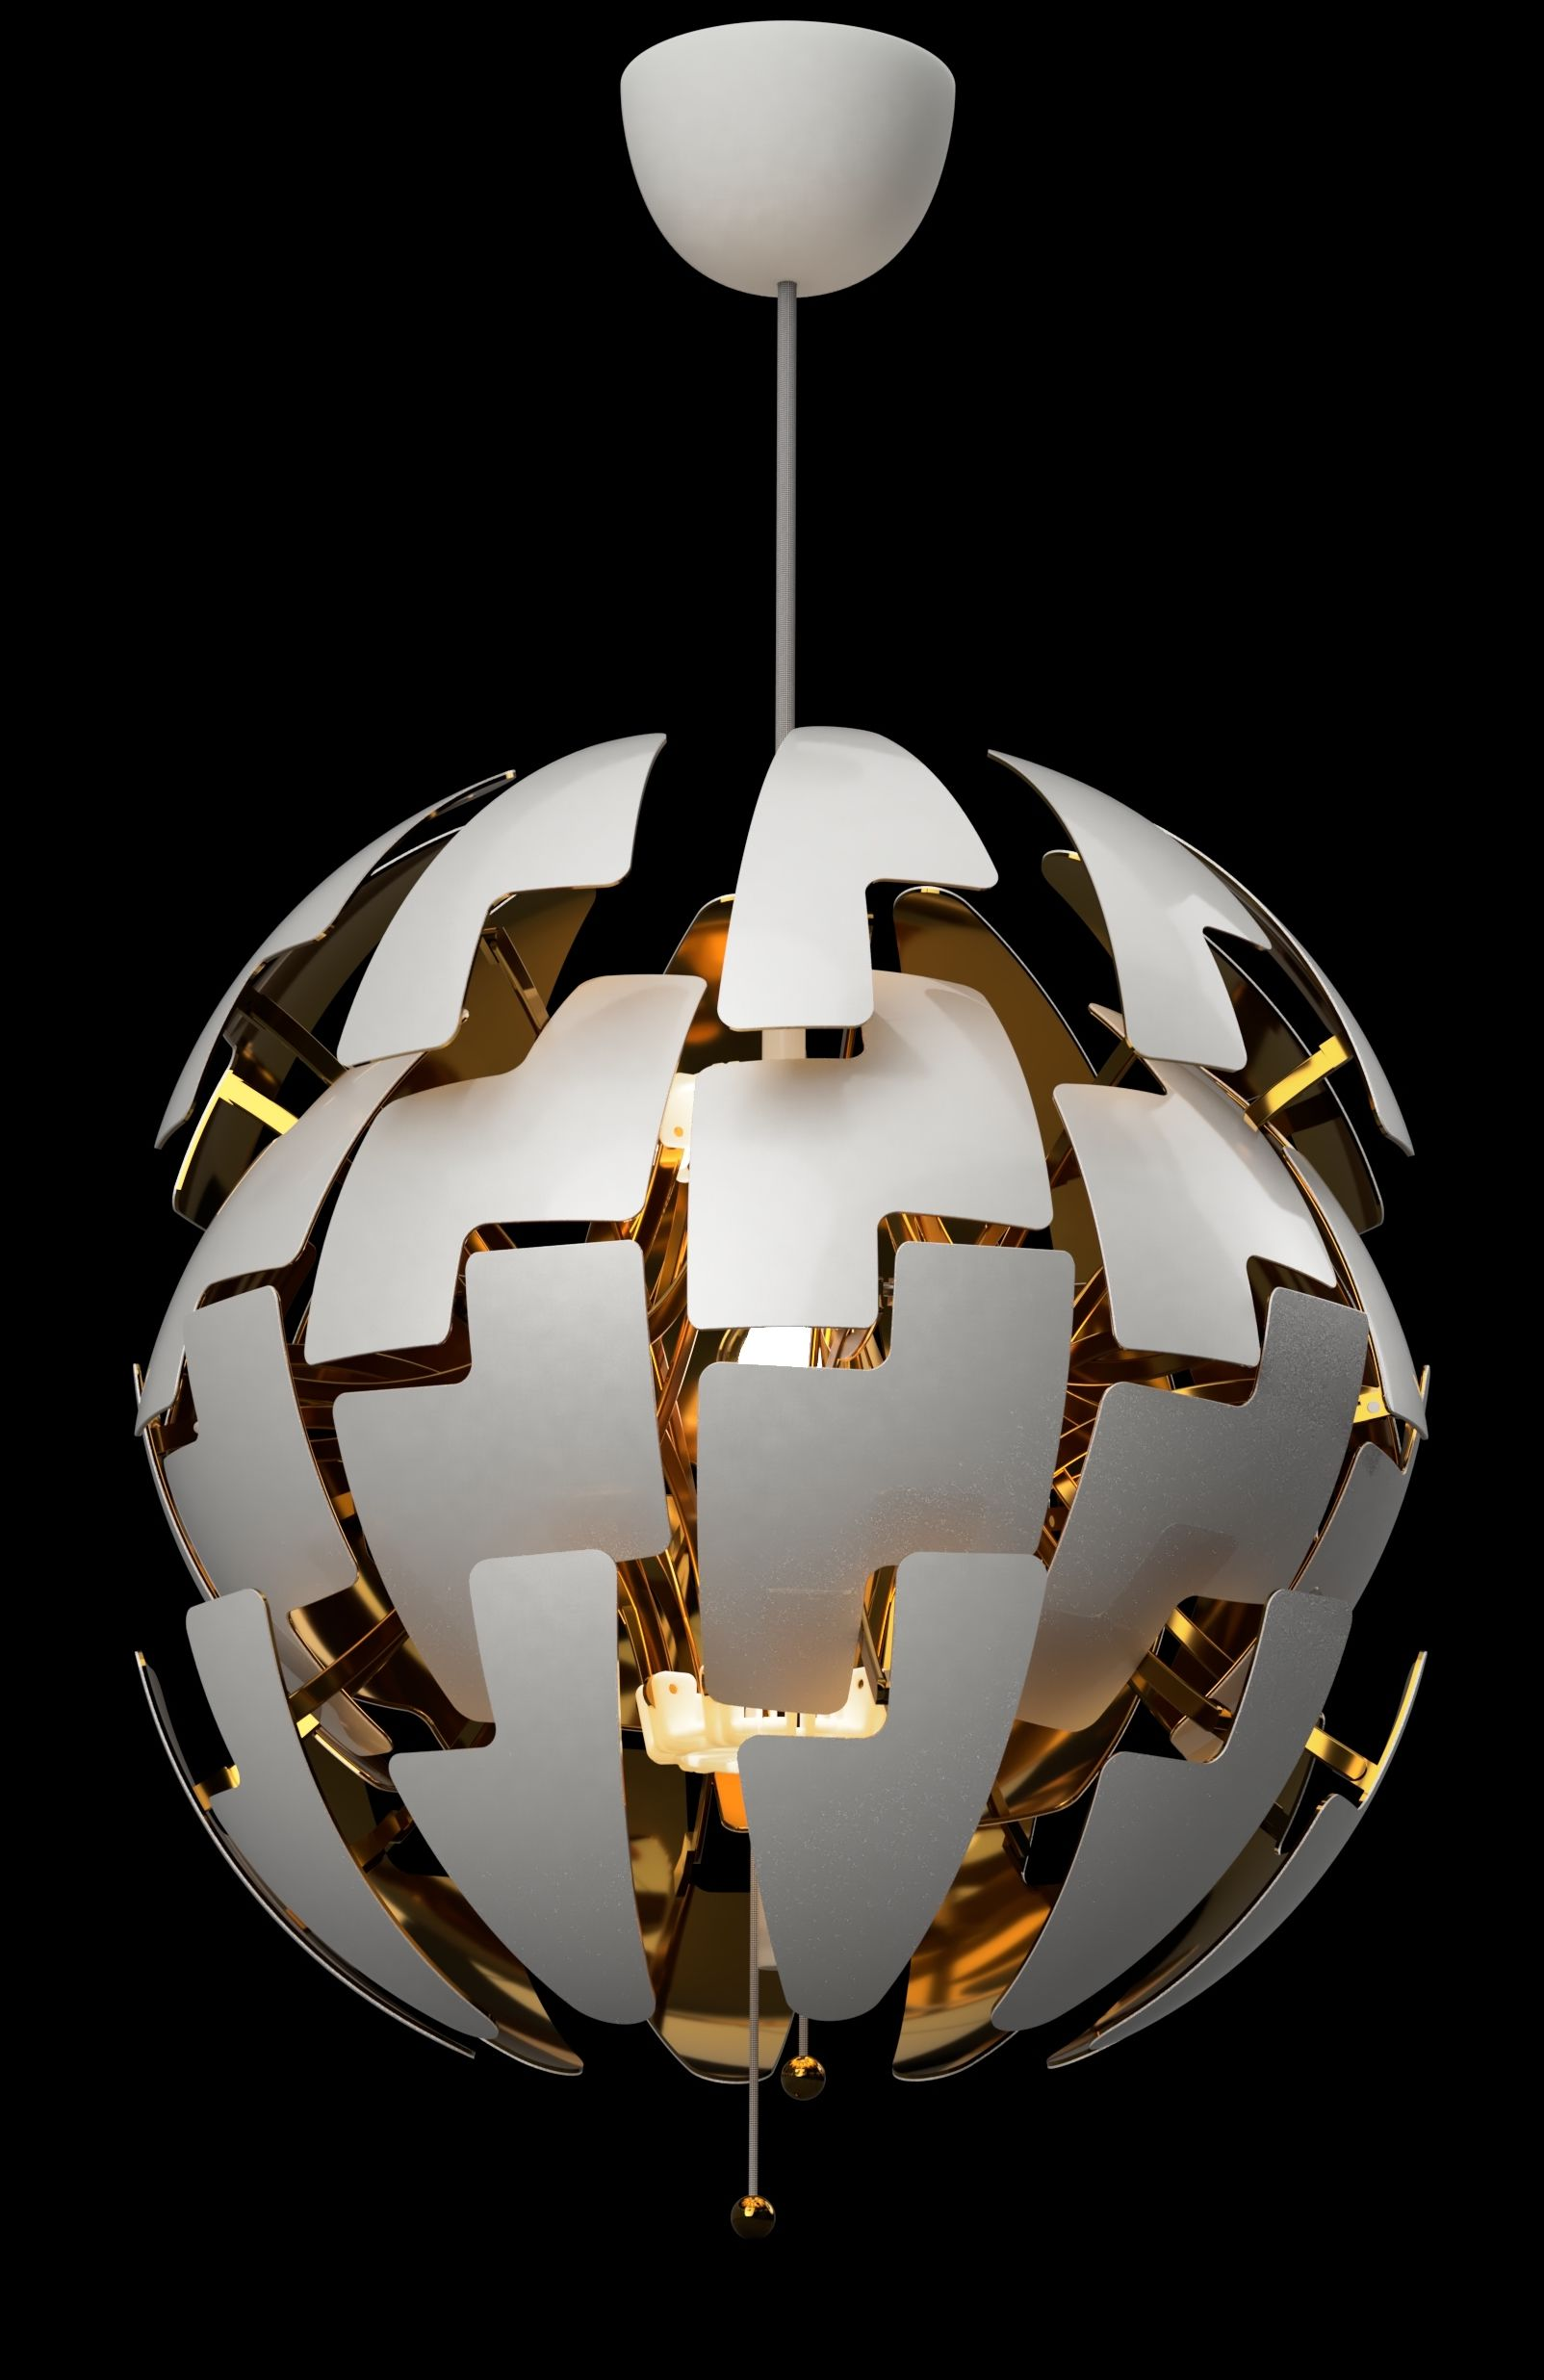 Ikea Ps 2014 Transforming Lamp Autodesk Online Gallery